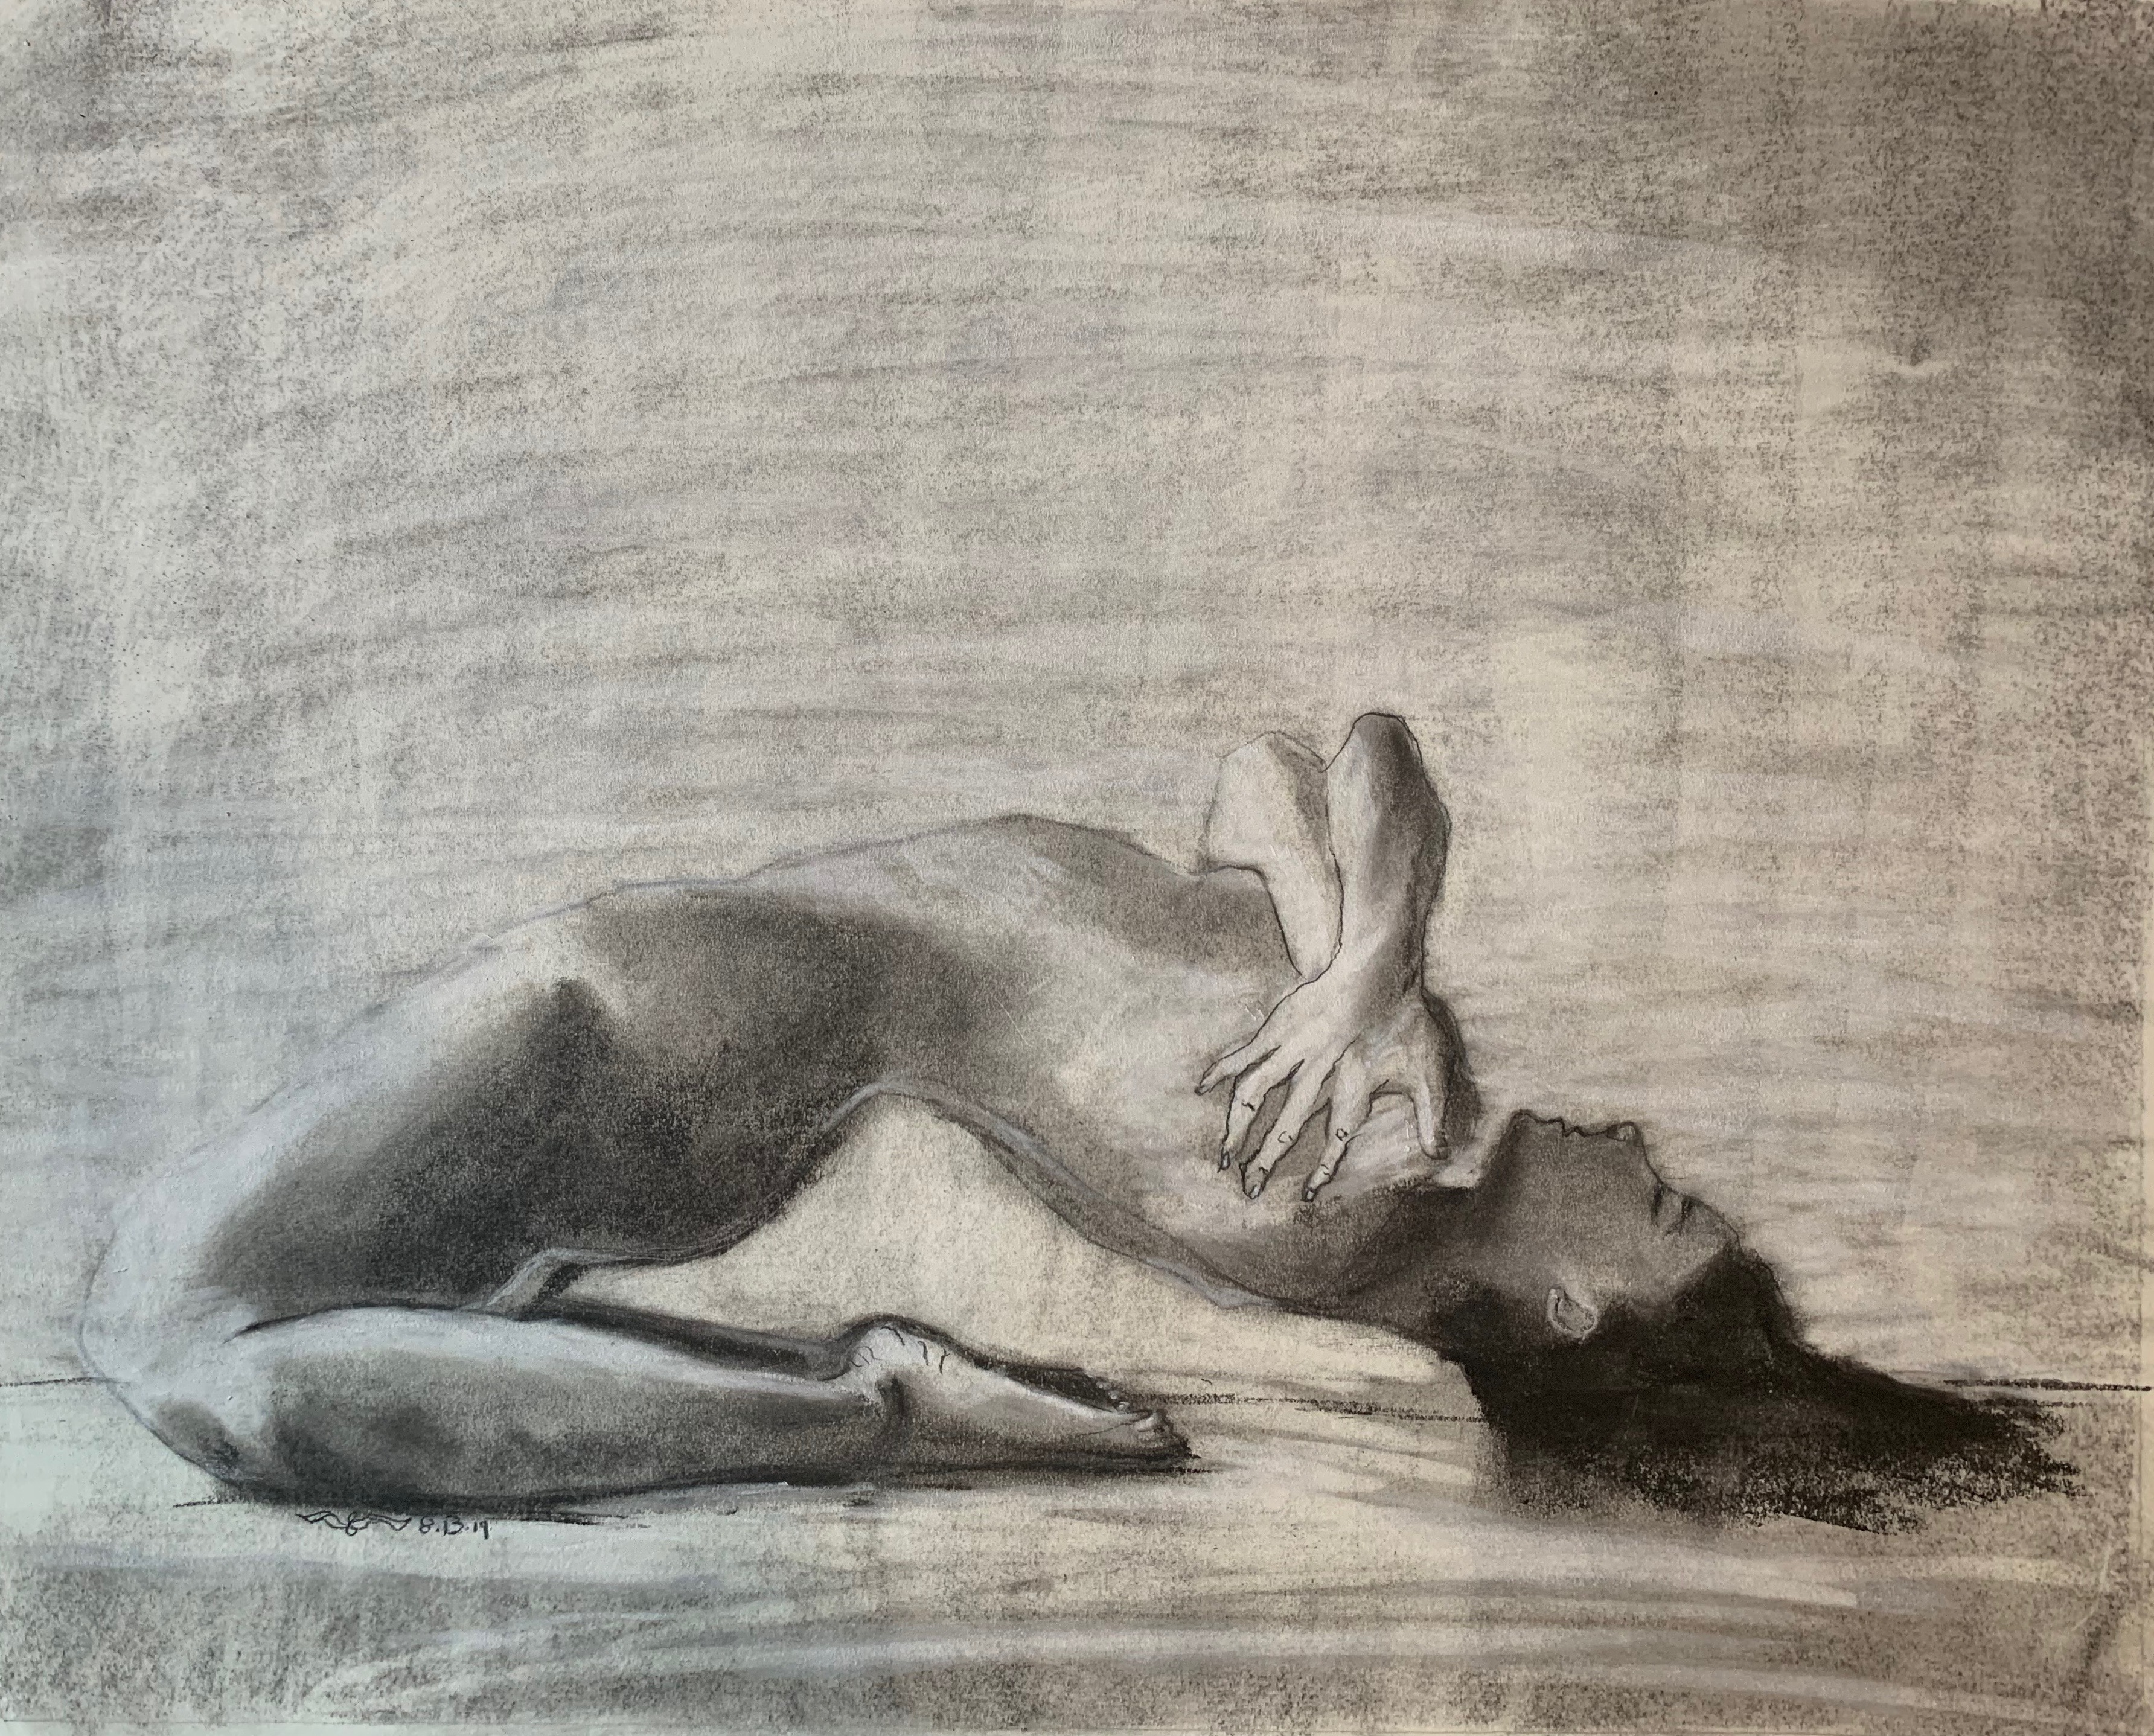 Charcoal Sketch, 2019